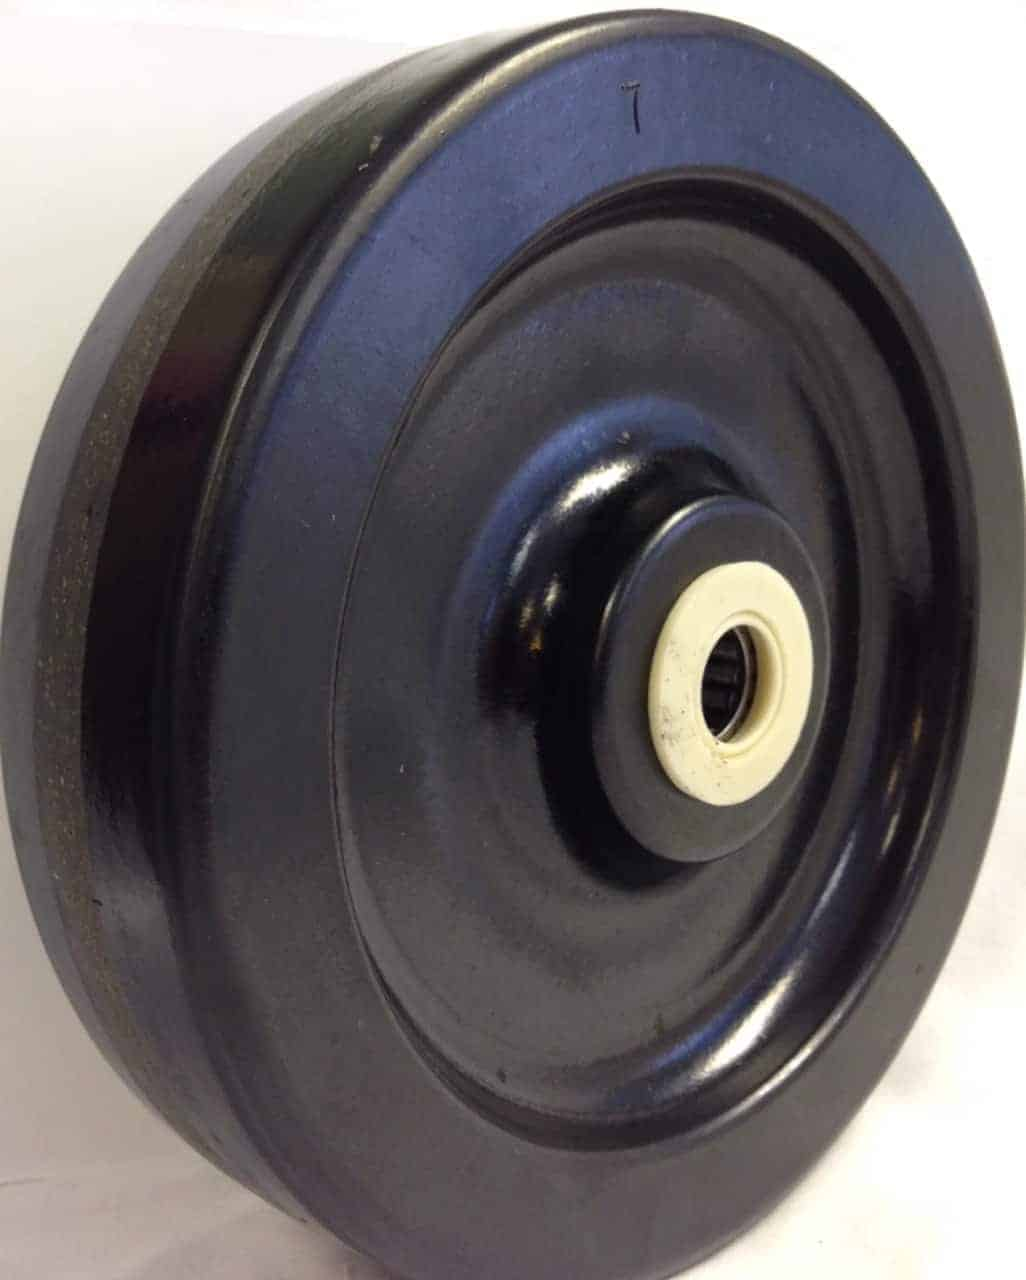 16″  Phenolic Wheel With 3-1/4″ Hub 1-1/4″ Roller Bearing 4000 Lbs Capacity